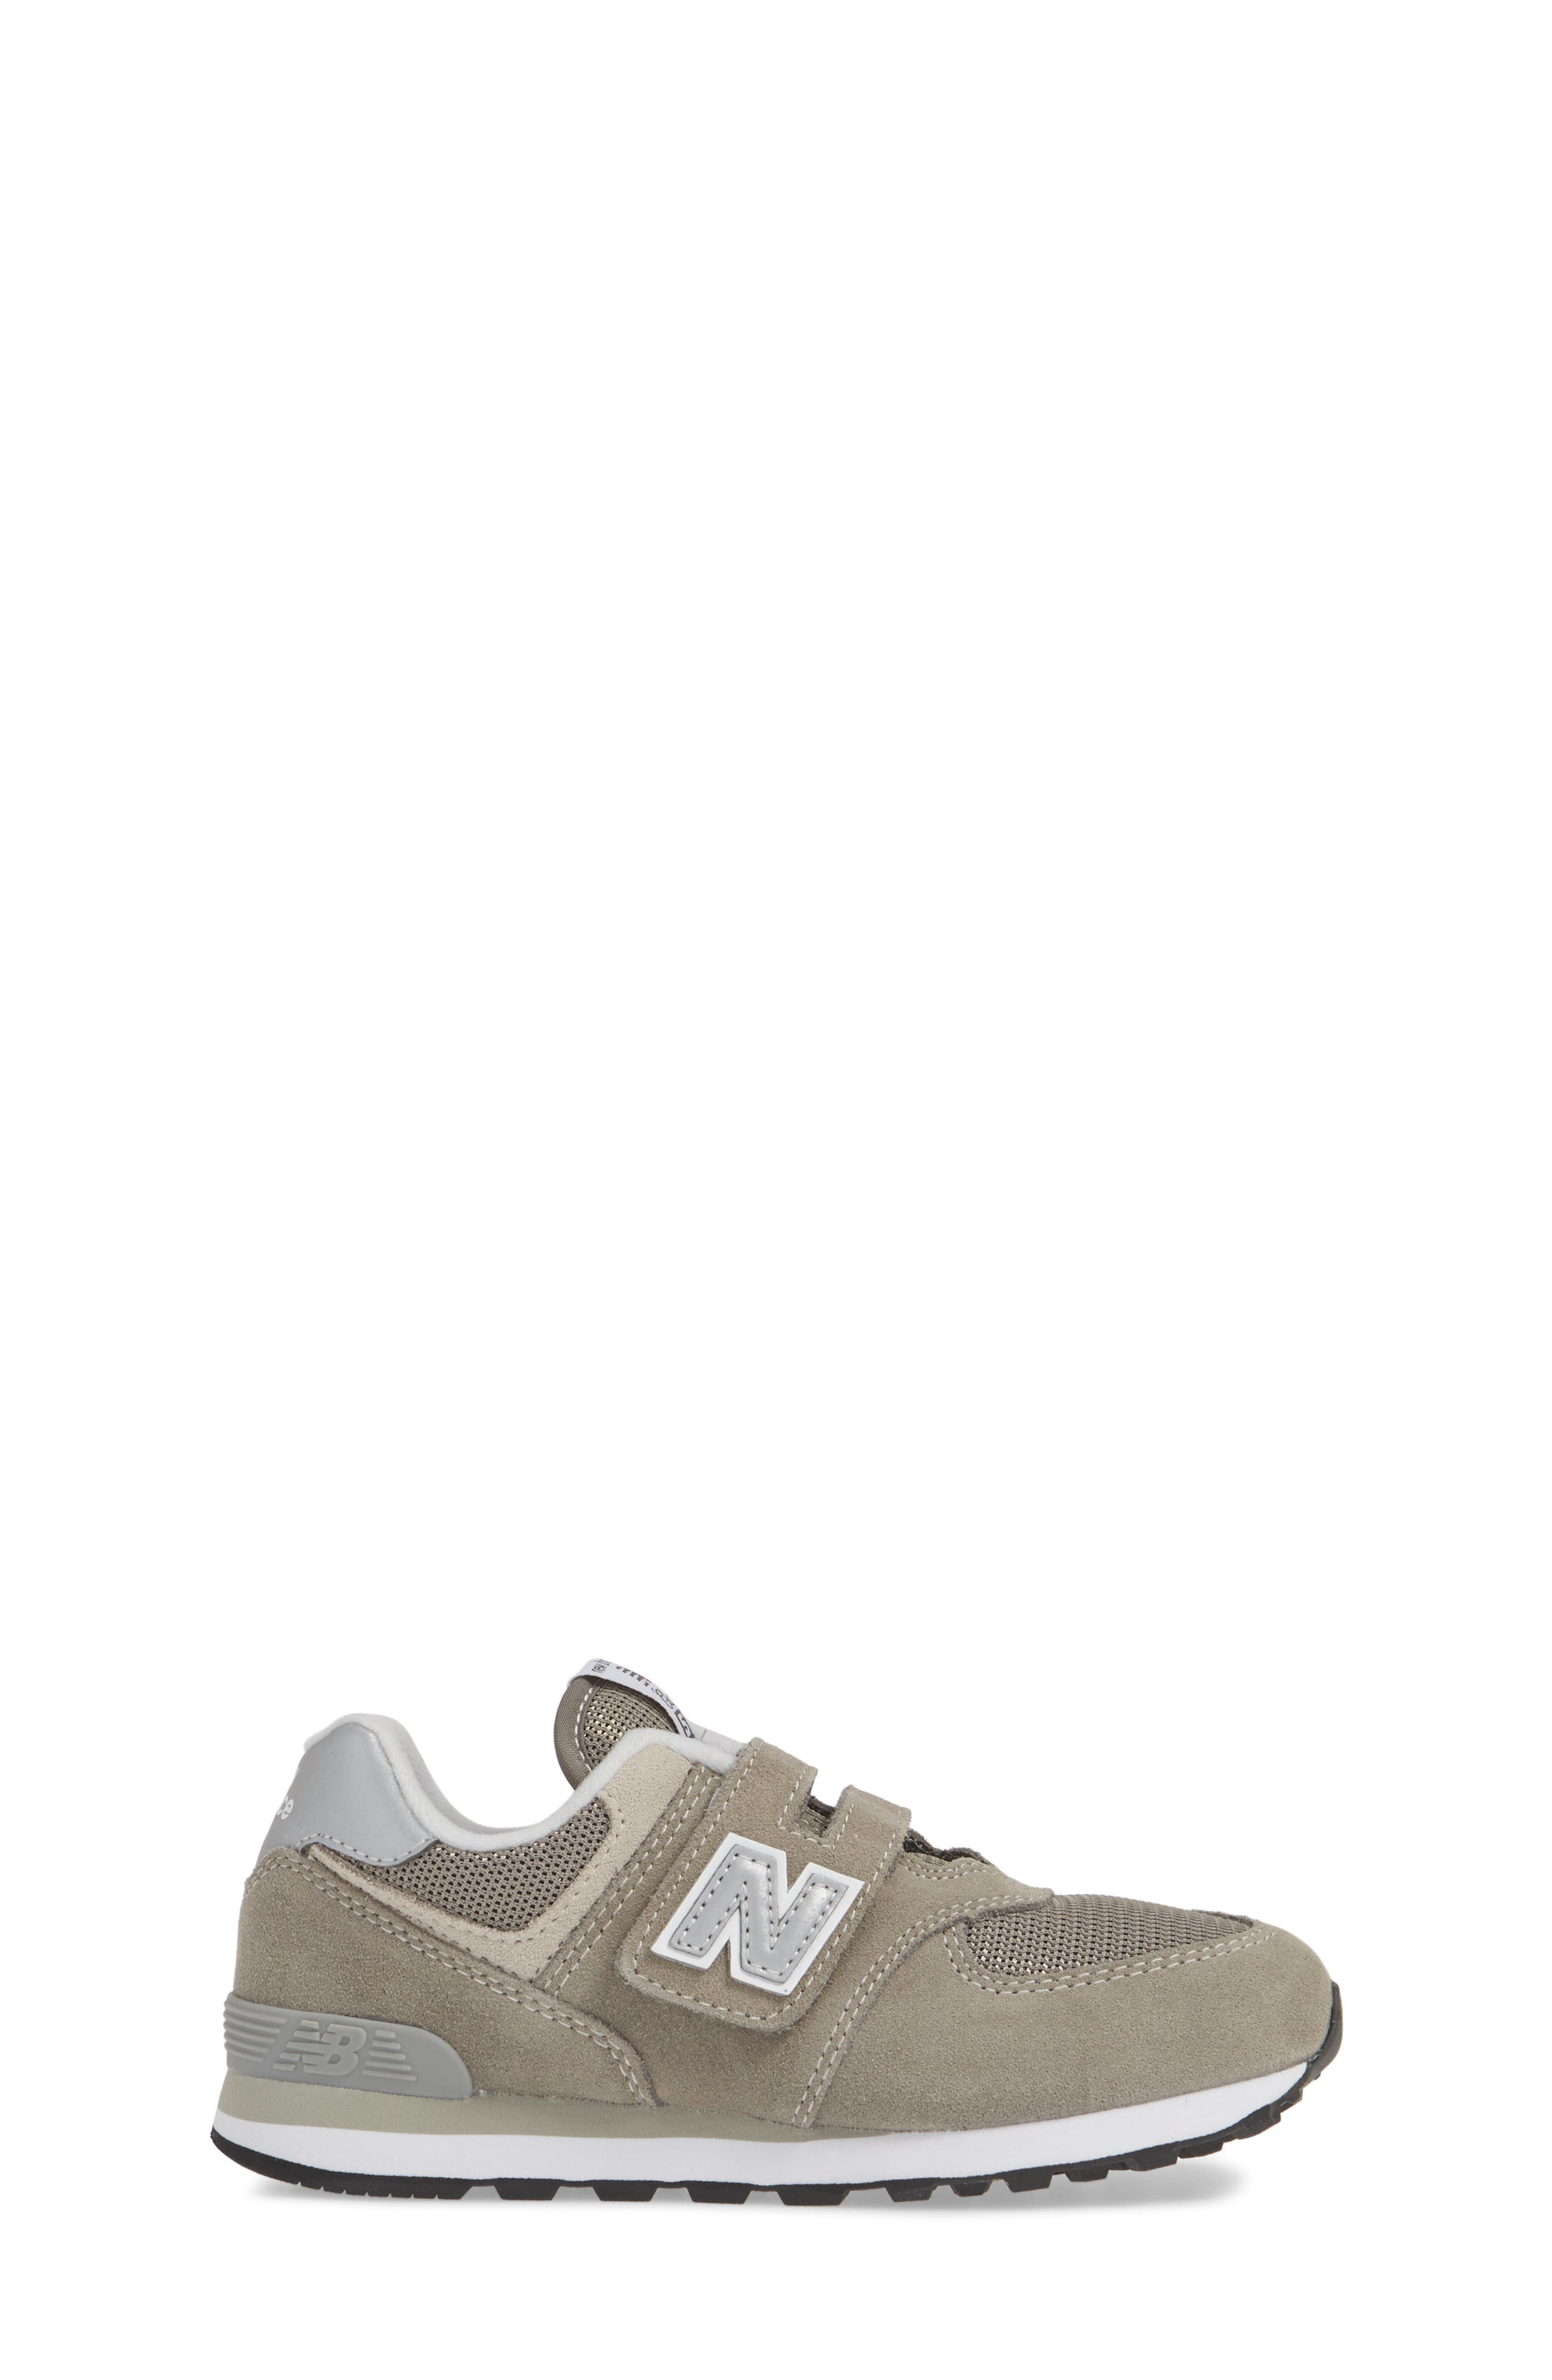 NEW BALANCE, 574 Retro Surf Sneaker, Alternate thumbnail 3, color, GREY